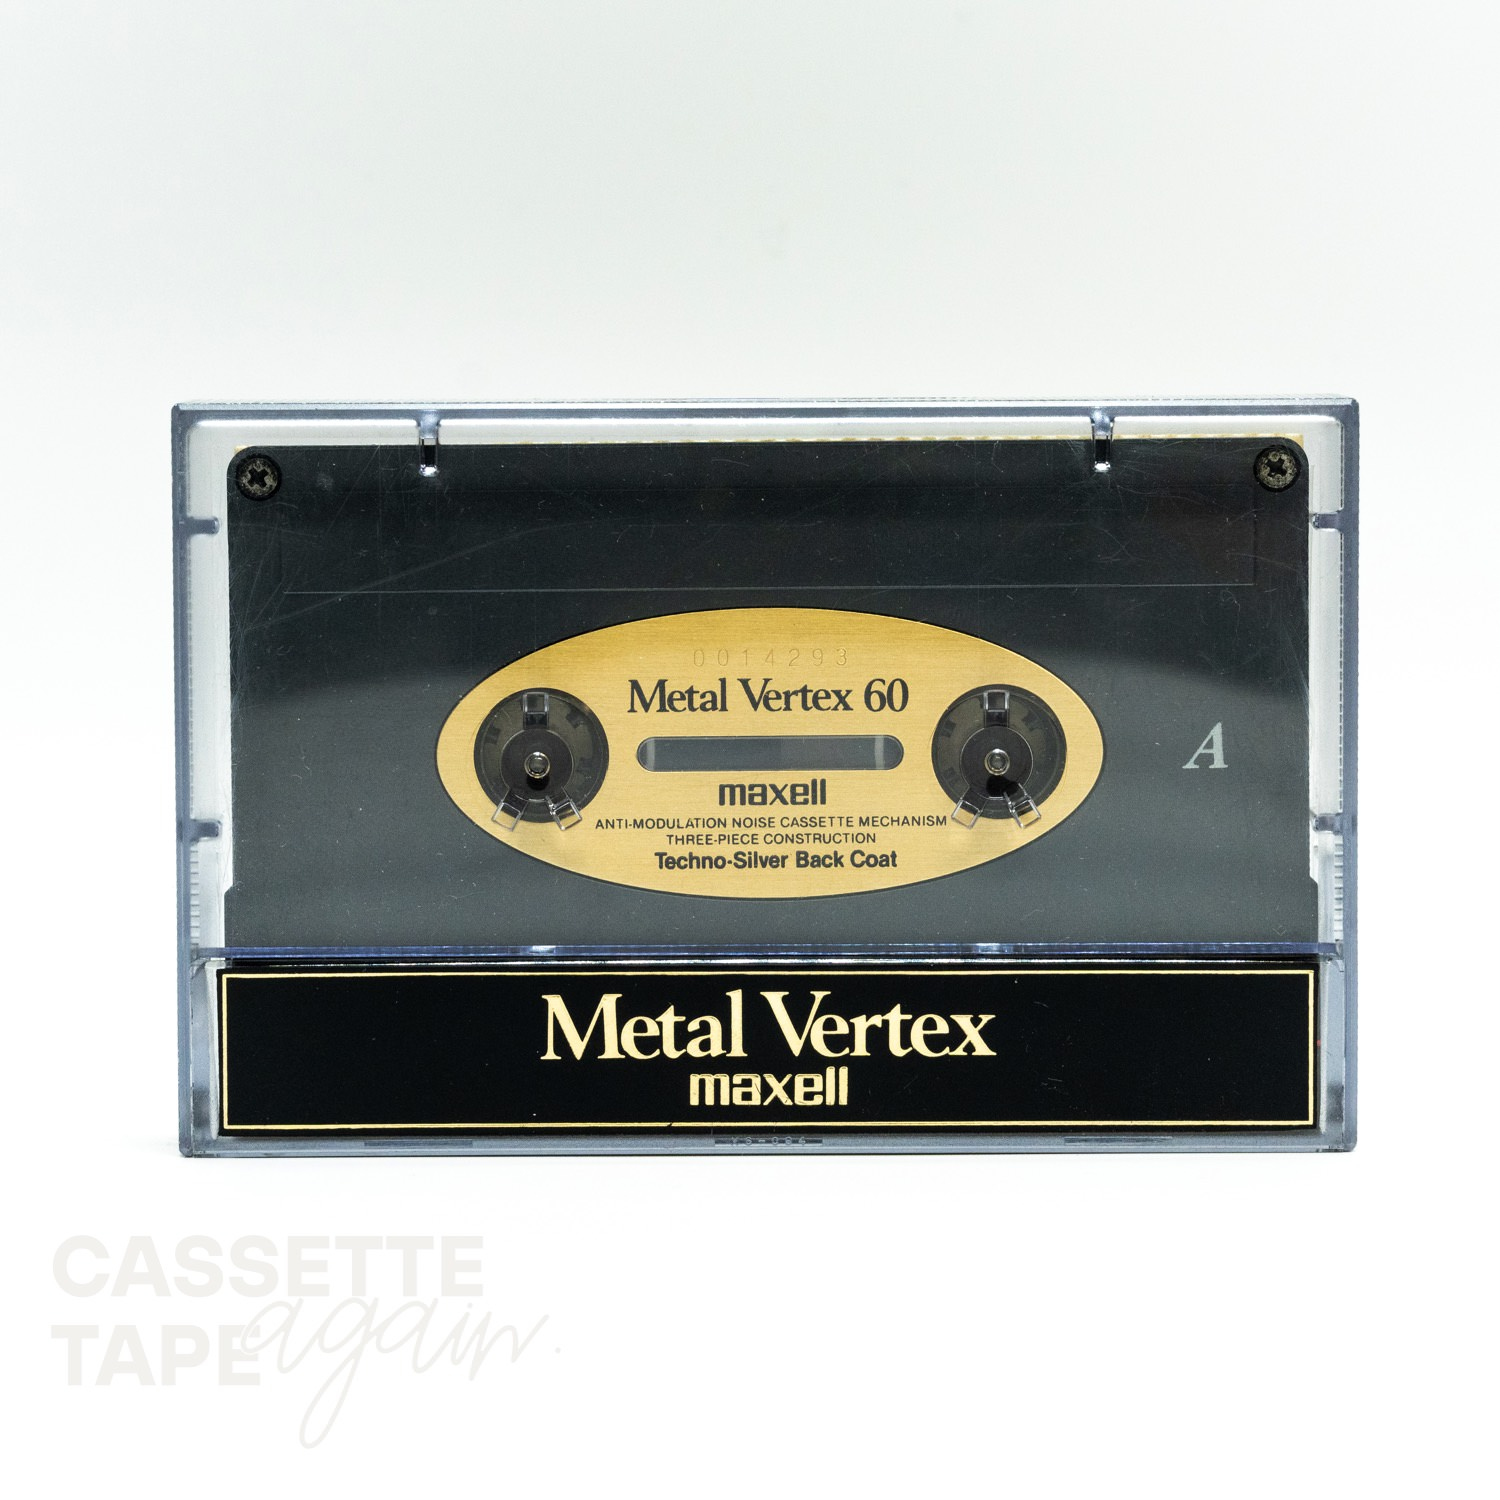 Metal Vertex 60 / maxell(メタル)